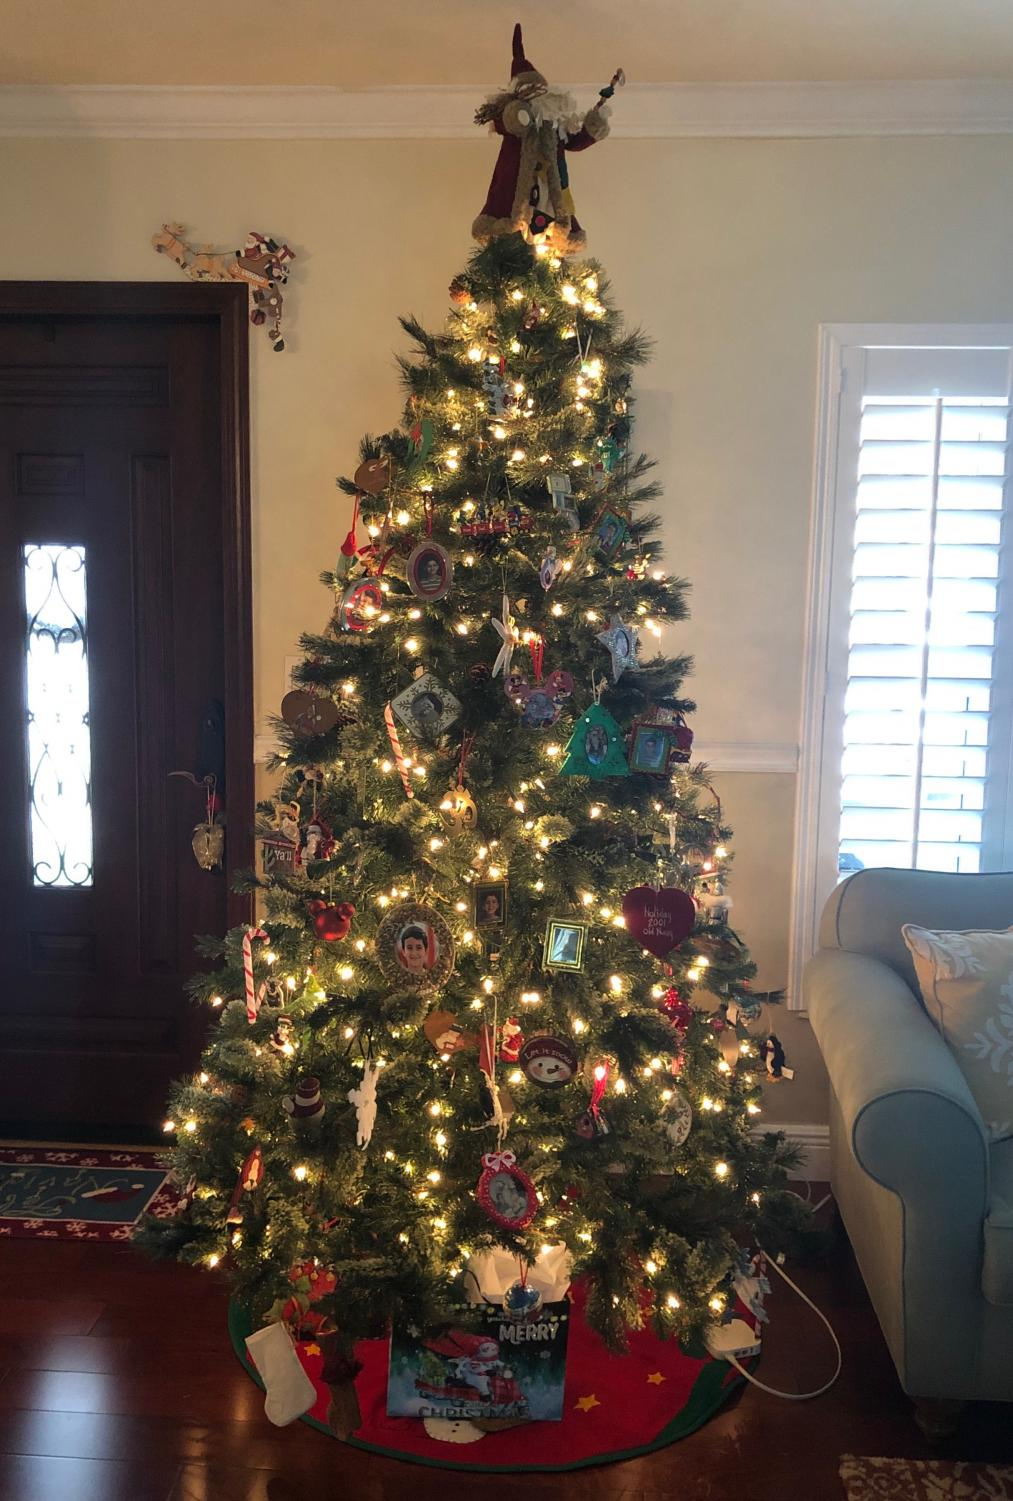 Christmas trees can have both personalized and thematic decorations